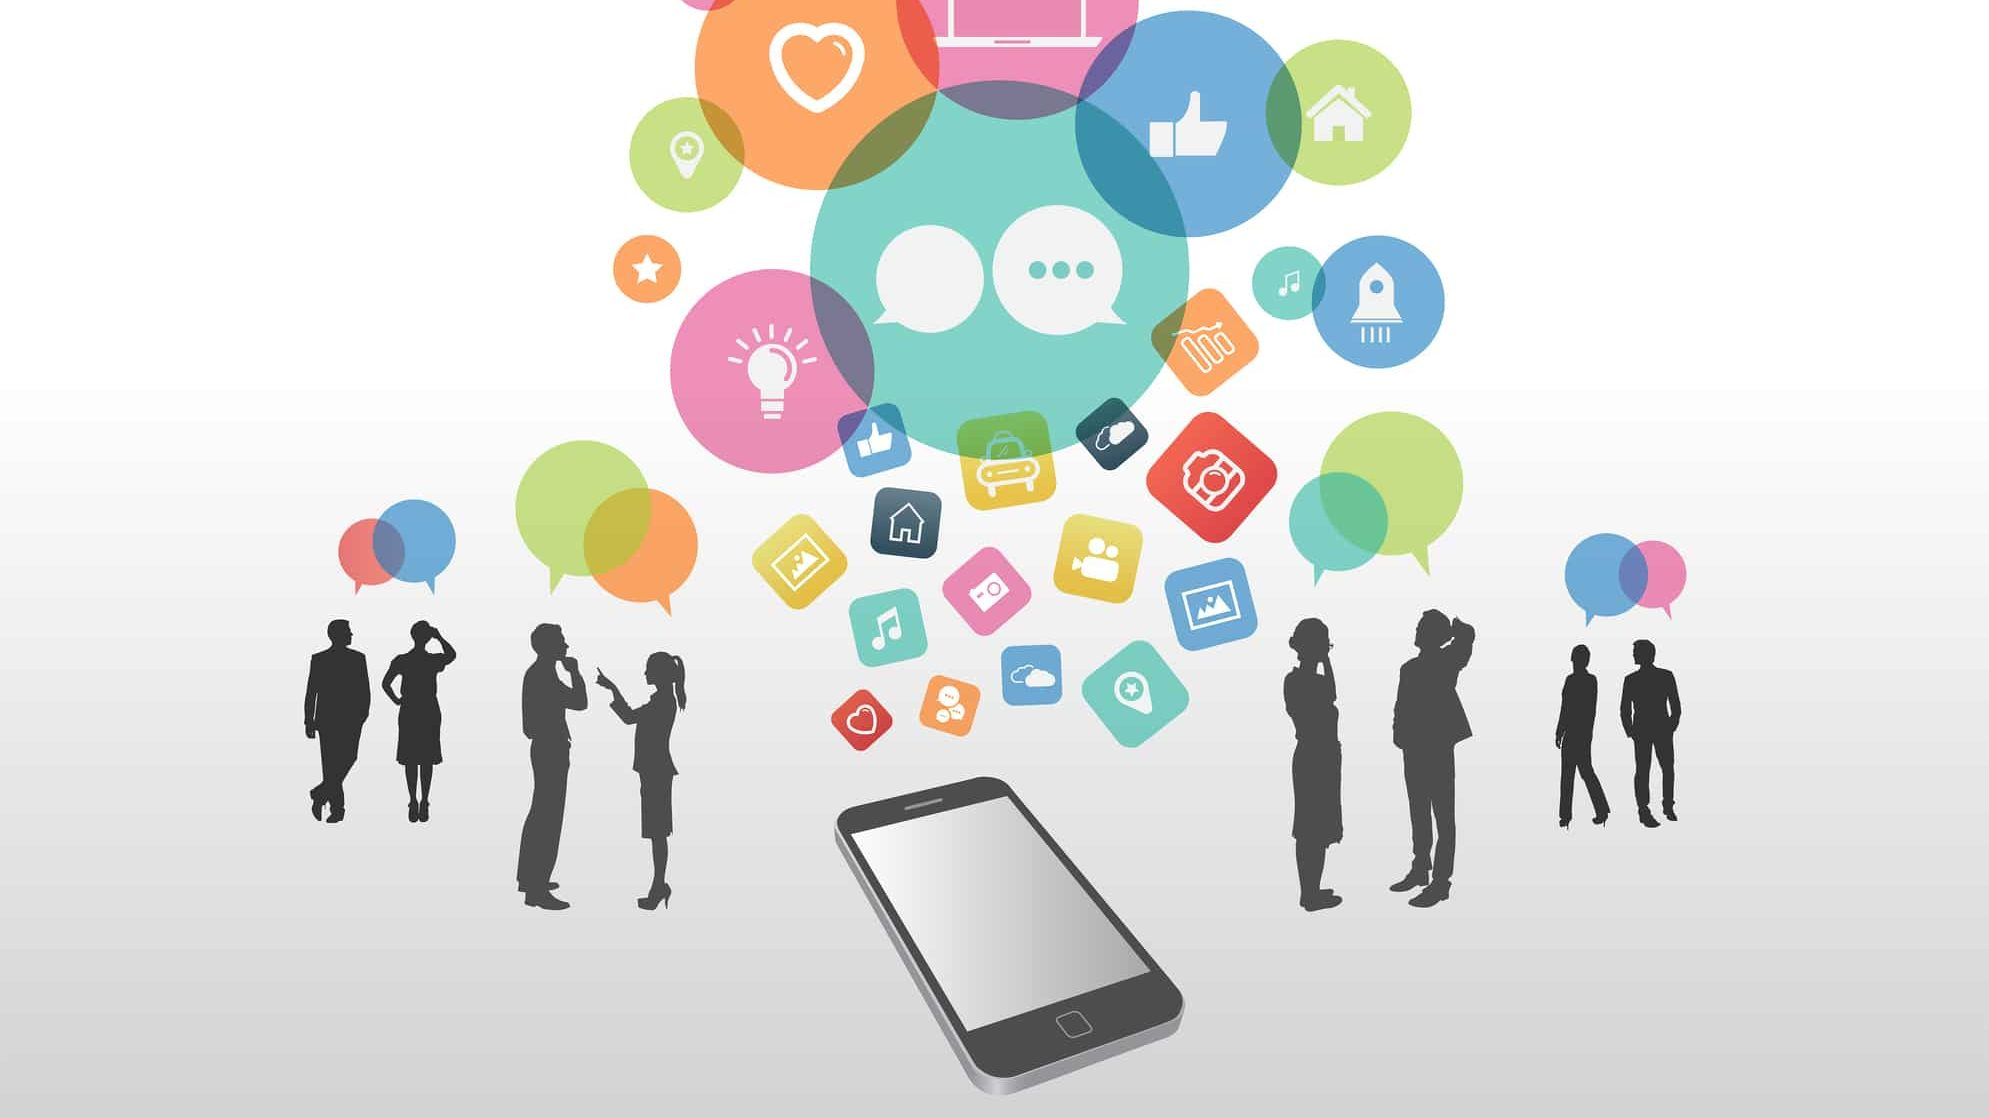 Using Social Media to Improve Employee Engagement